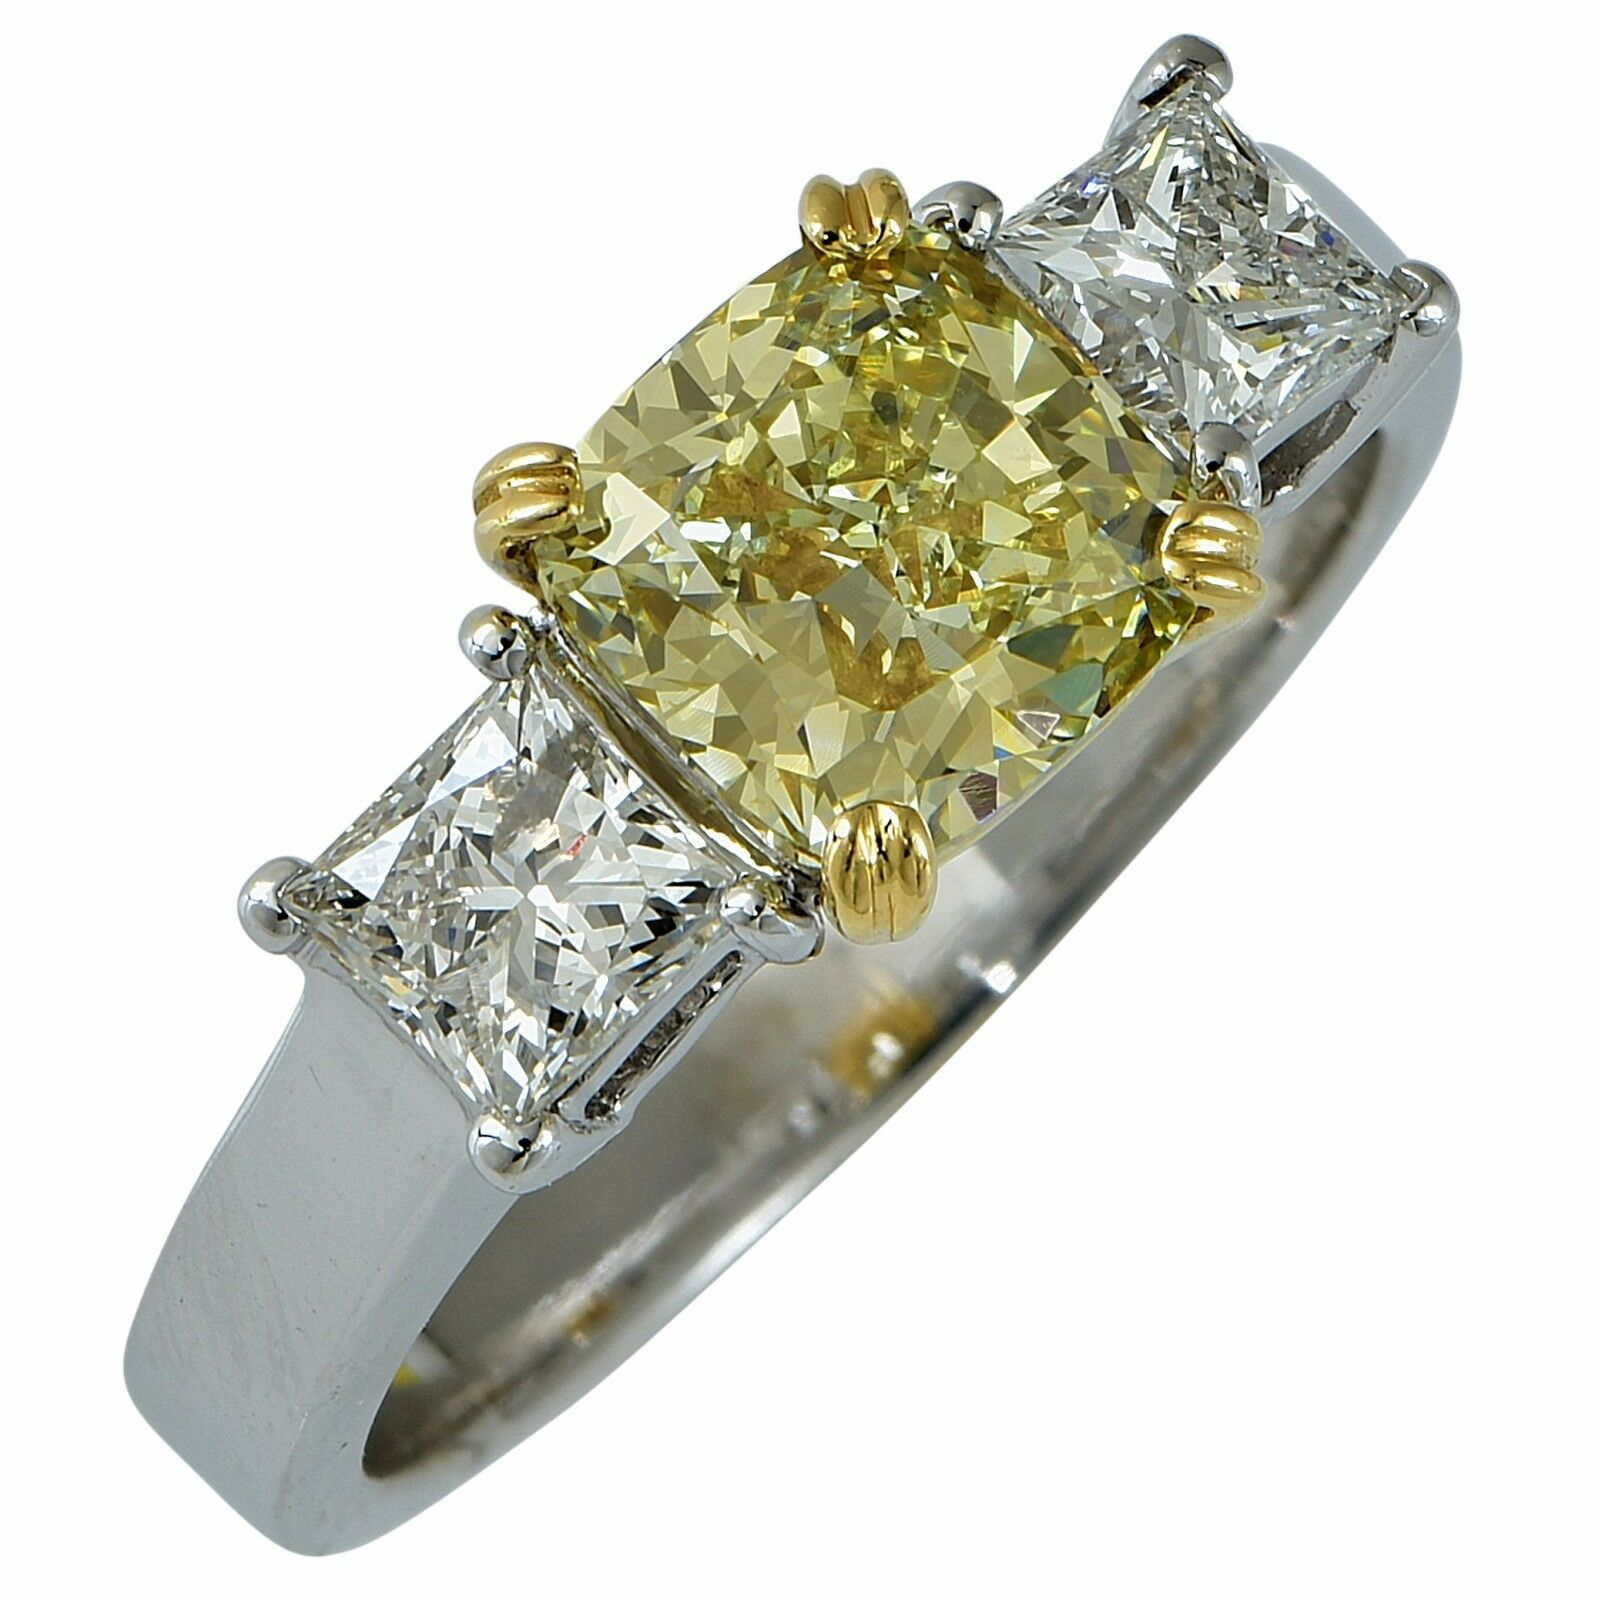 Beautiful GIA Certified Natural Fancy Color Yellow Diamond Engagement Ring